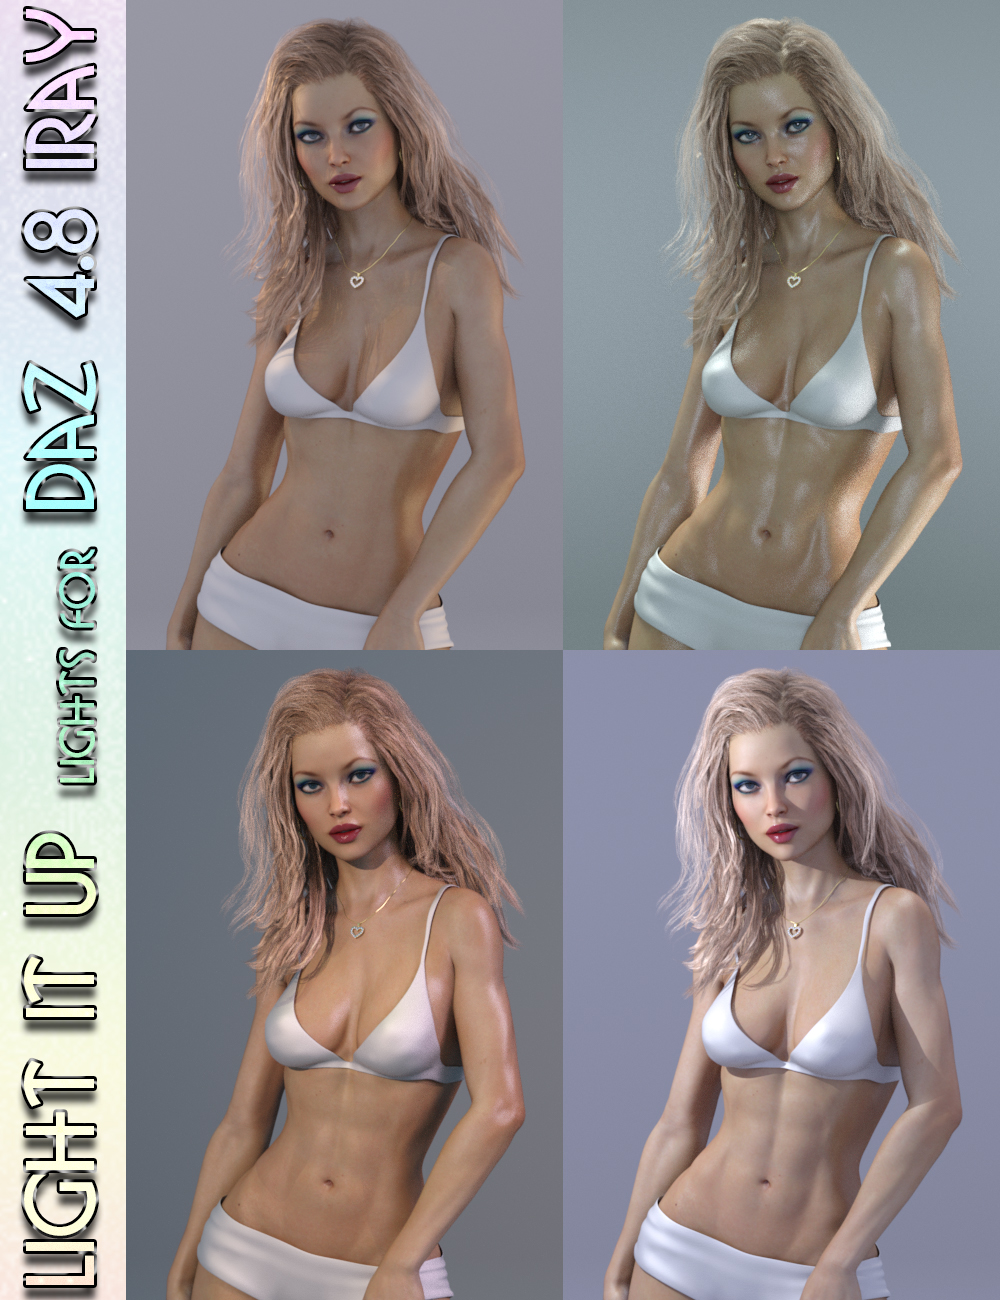 Light It Up Iray Lights by: lunchlady, 3D Models by Daz 3D